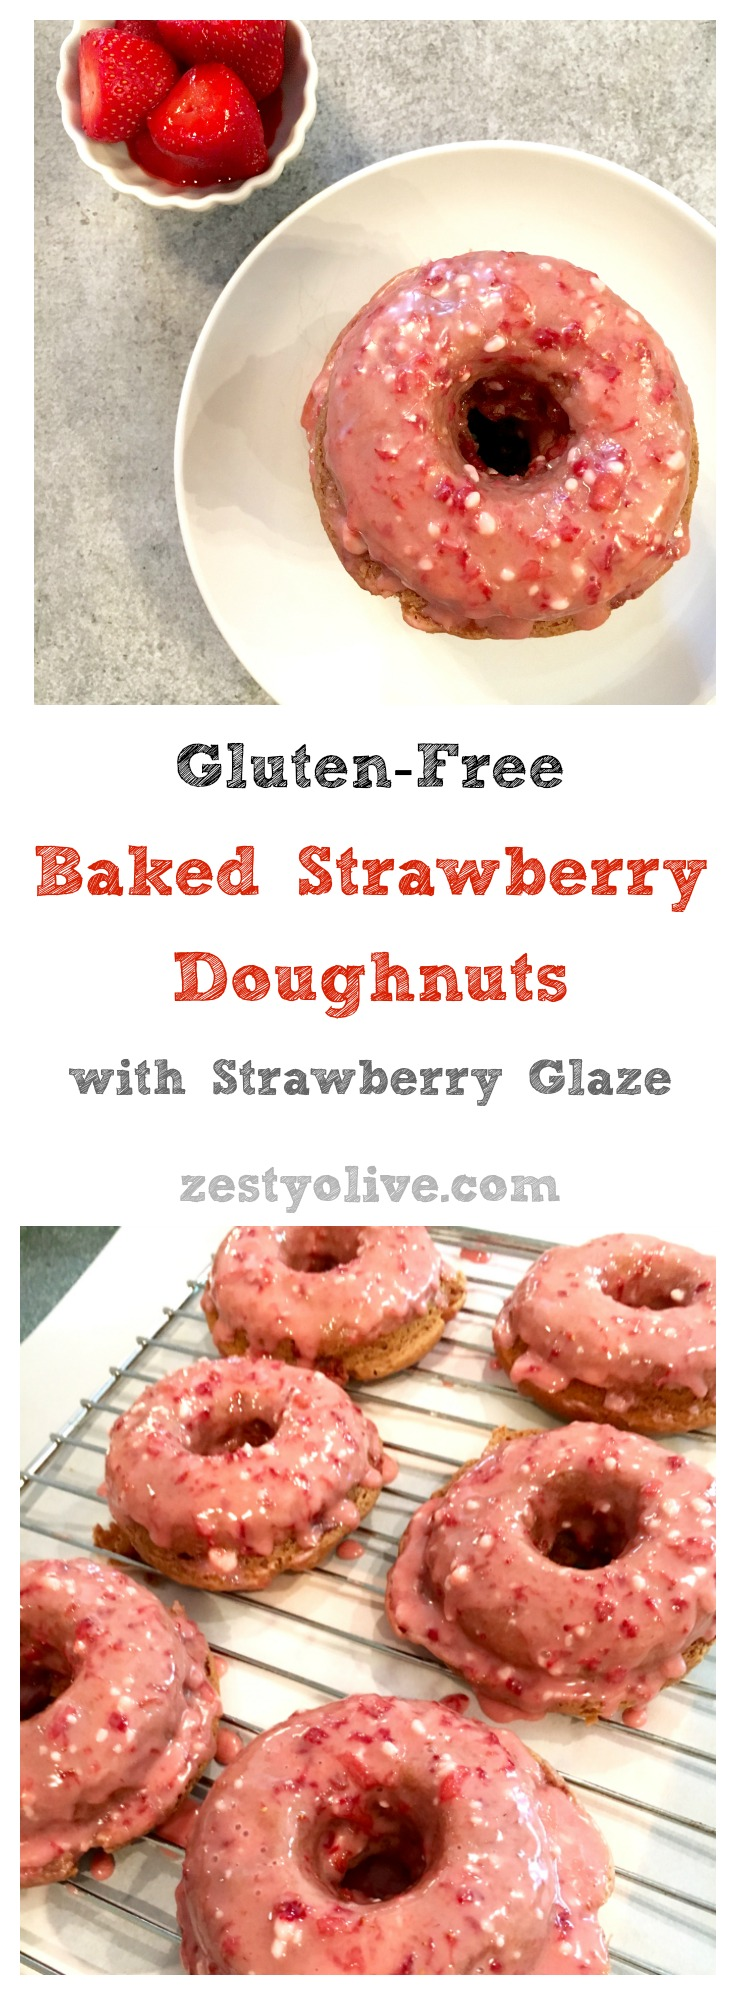 Gluten Free Baked Strawberry Doughnuts